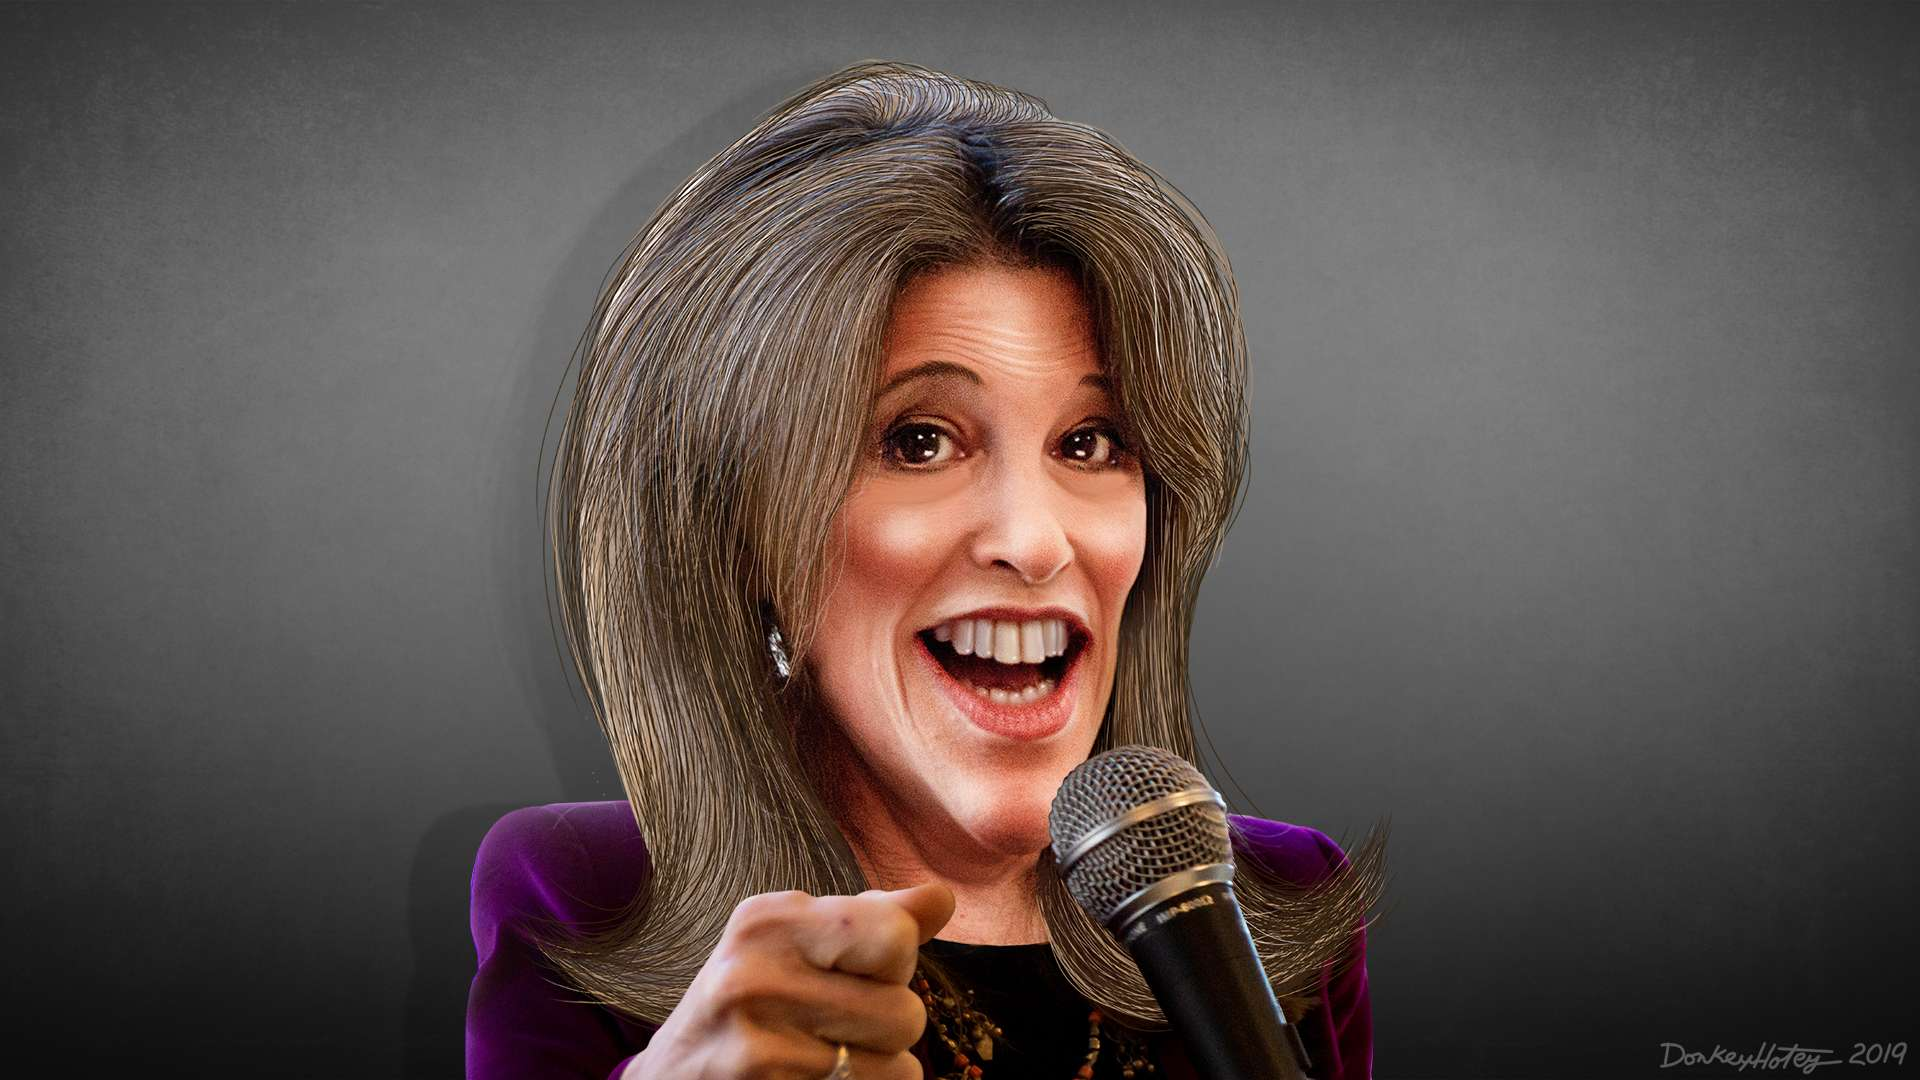 A caricature image of Marianne Williamson, a candidate for the Democratic presidential nomination in 2020. (Image Credit: DonkeyHotey/Flickr)